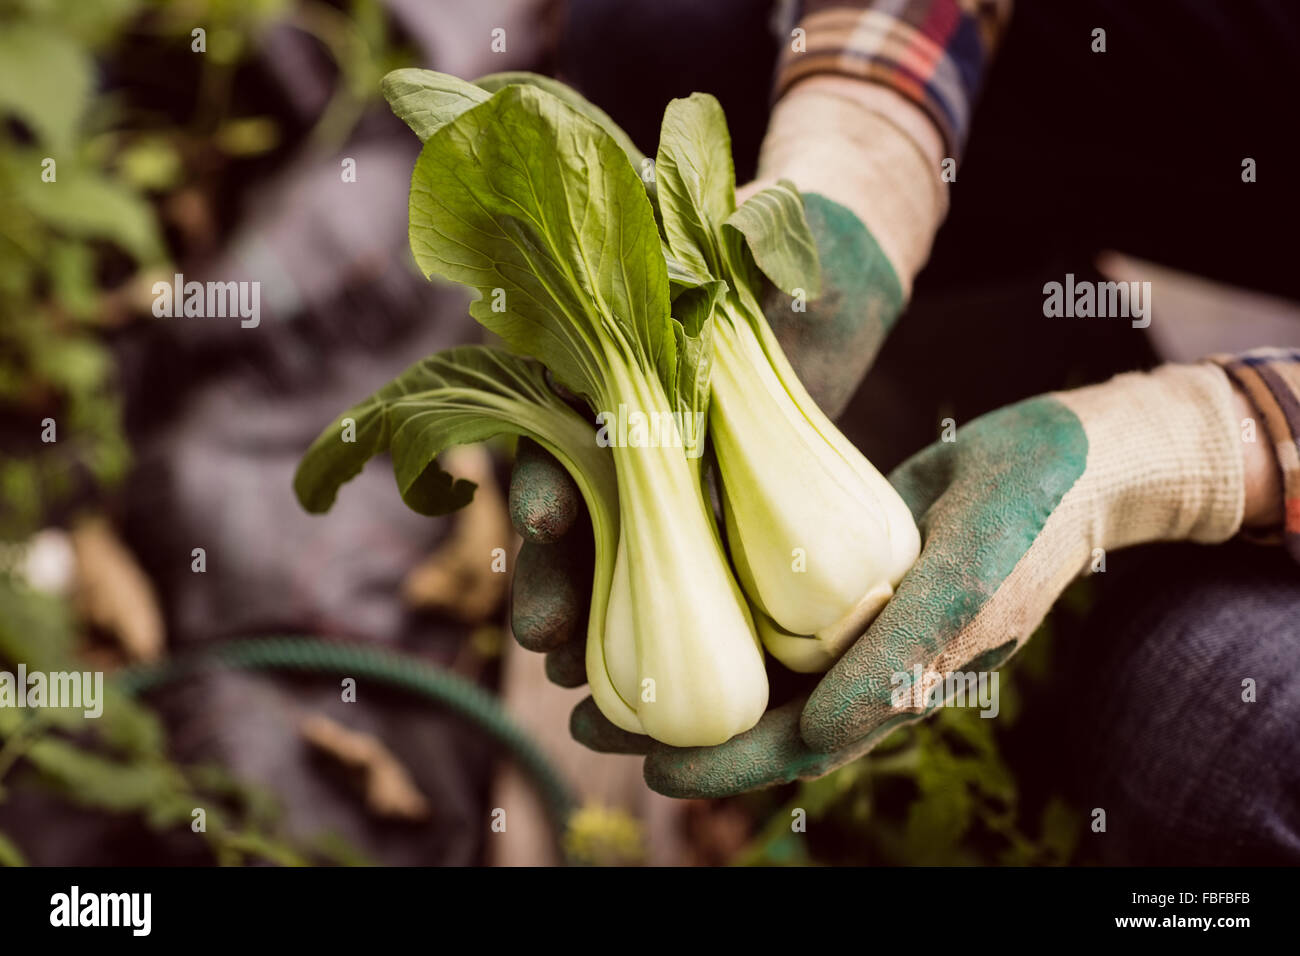 Man holding and showing vegetable - Stock Image